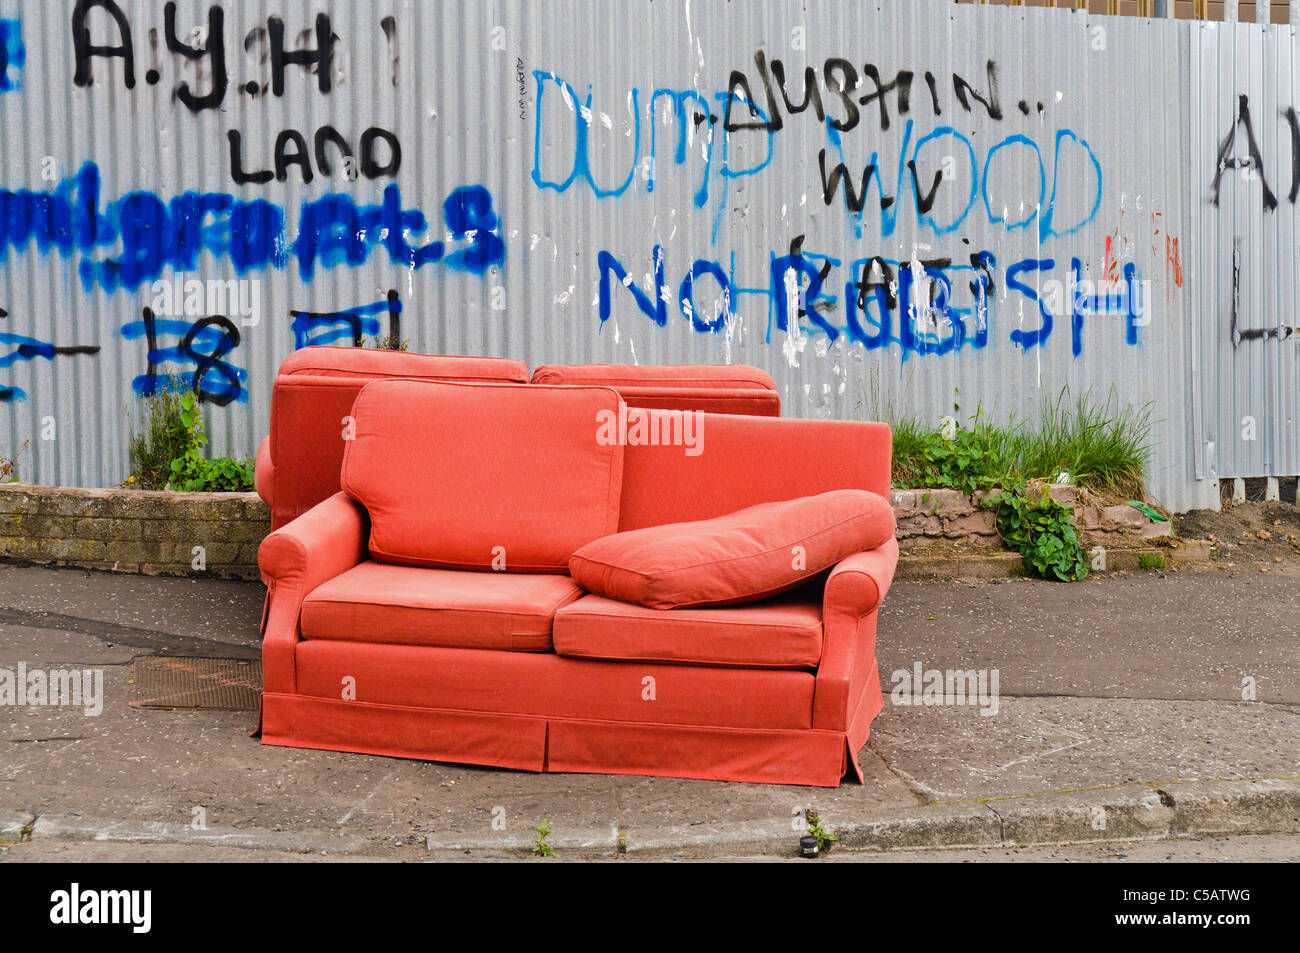 Two old red sofas left on a footpath beside a fence with 'No Rubbish' written on it. - Stock Image